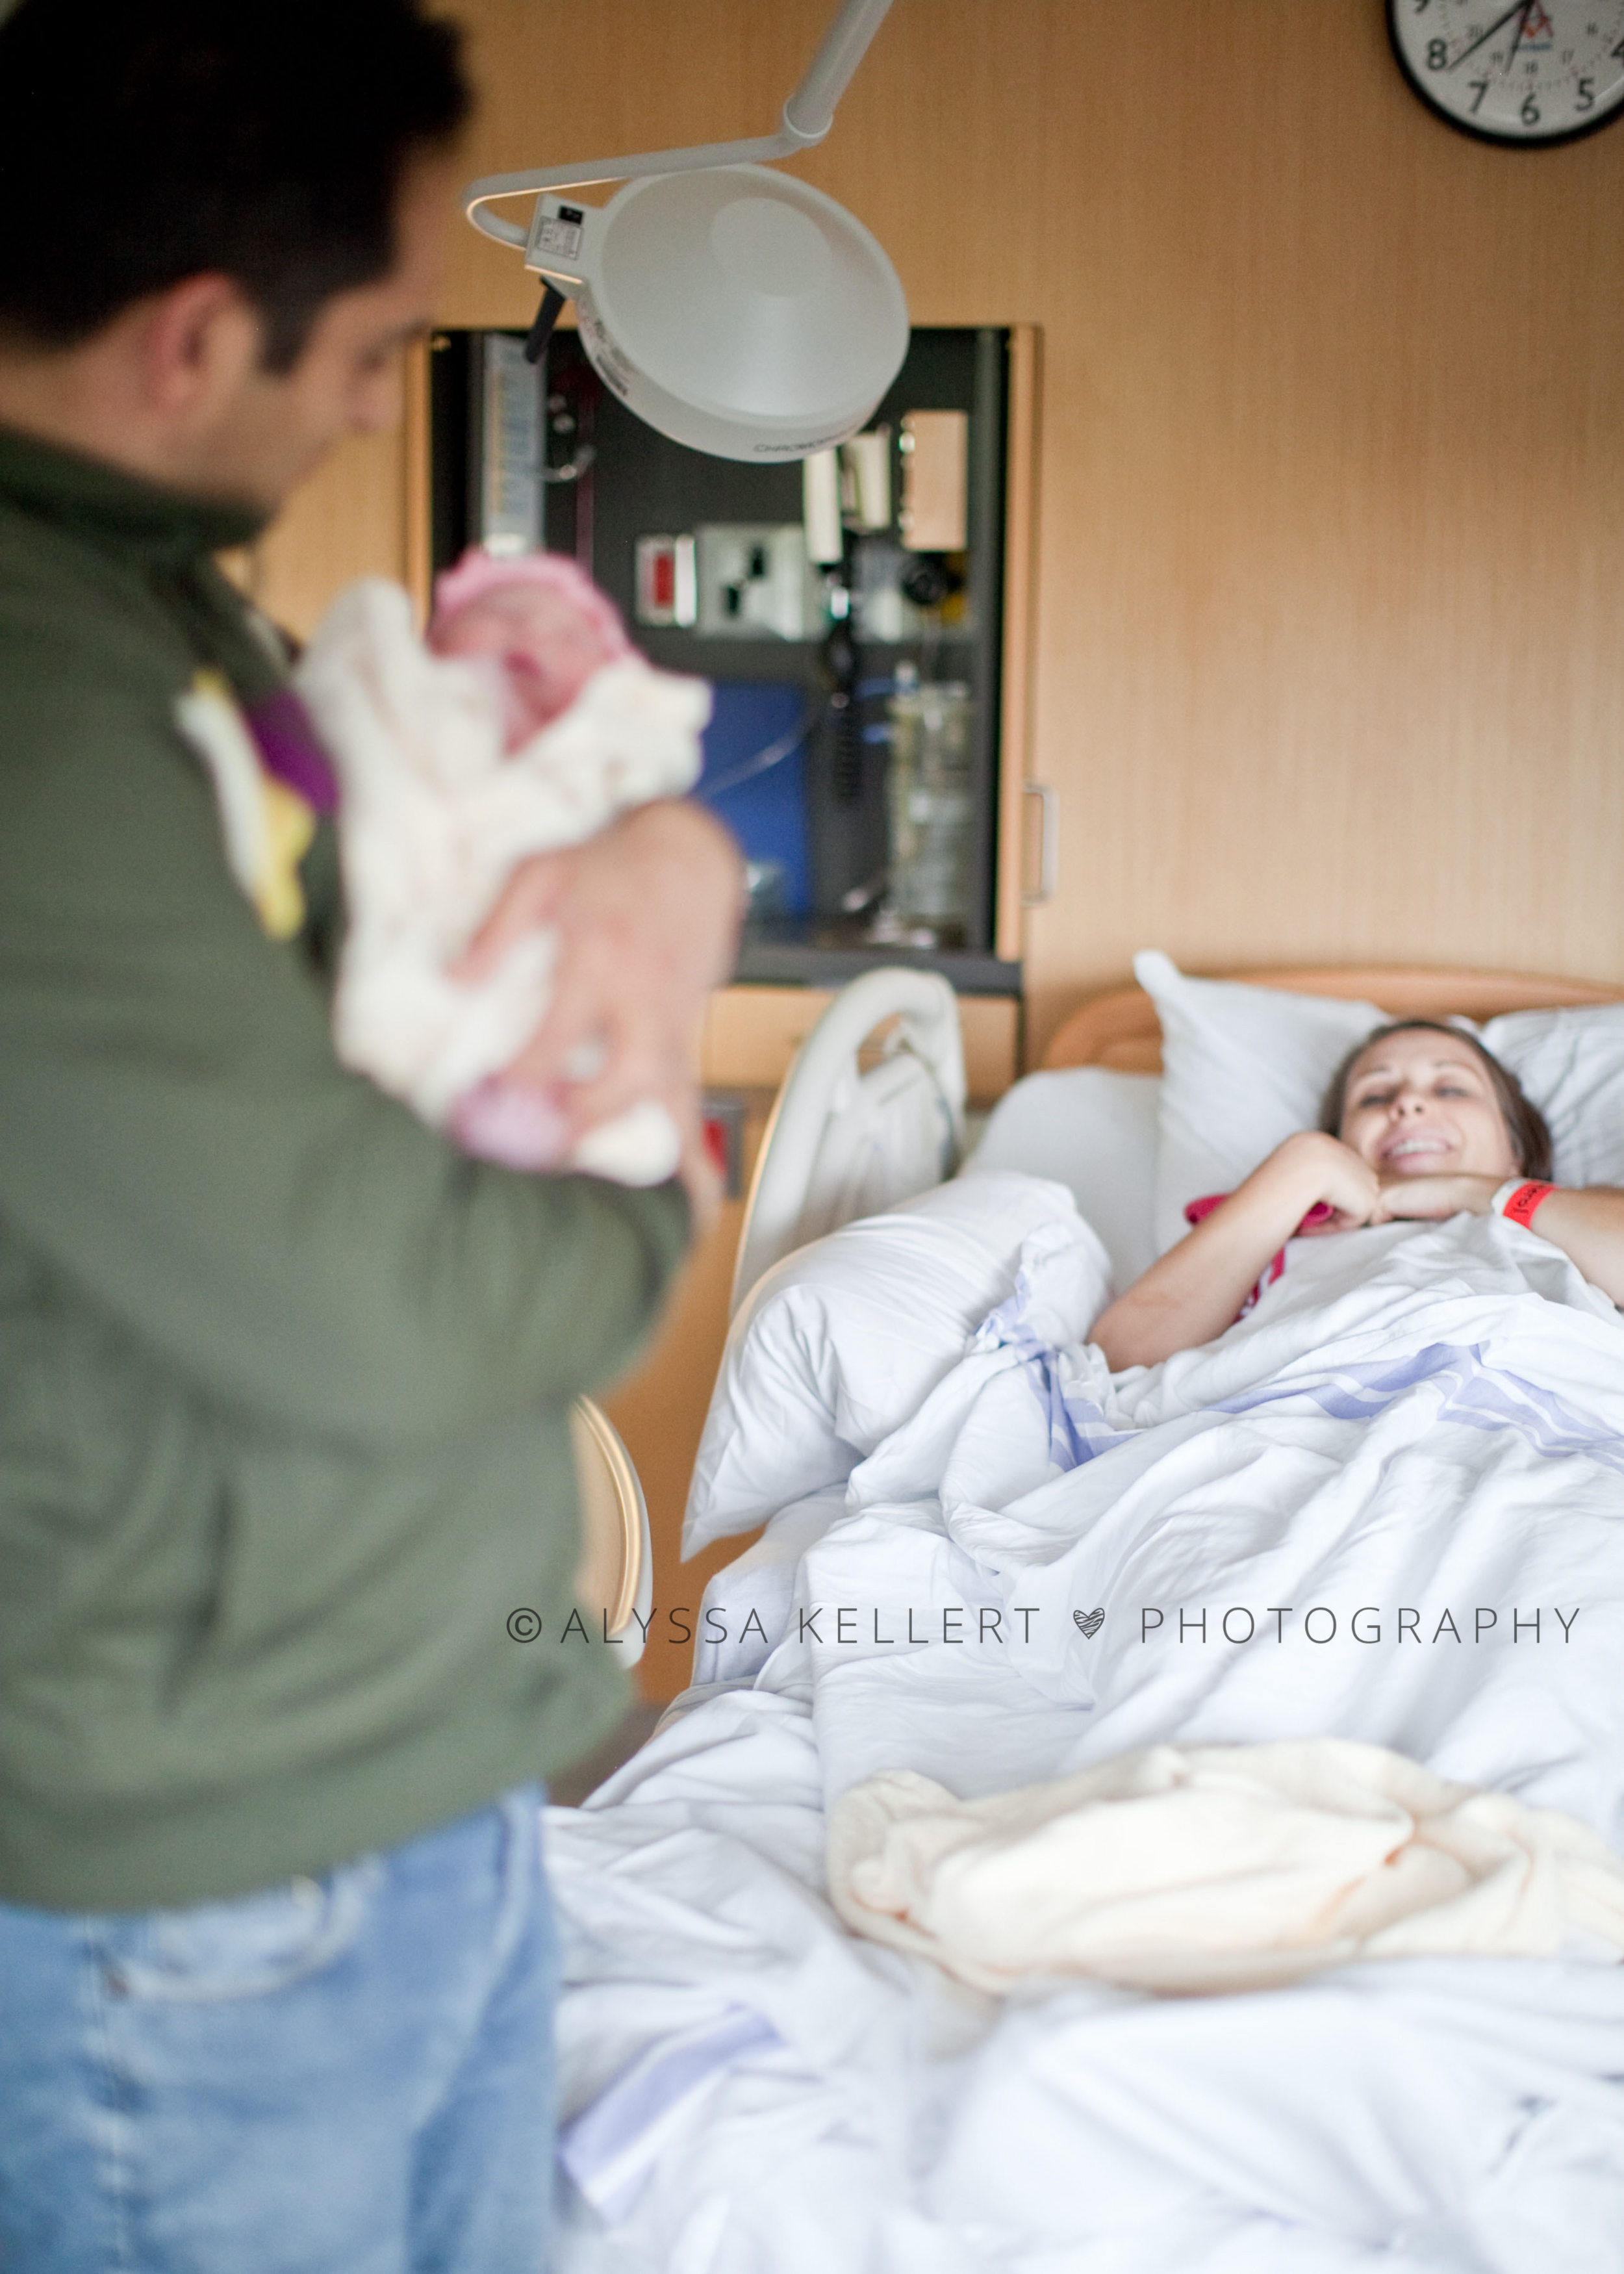 photography-newborn-photography-birth-story-dad-hold-baby-mom-background-labour-peace-arch-hospital